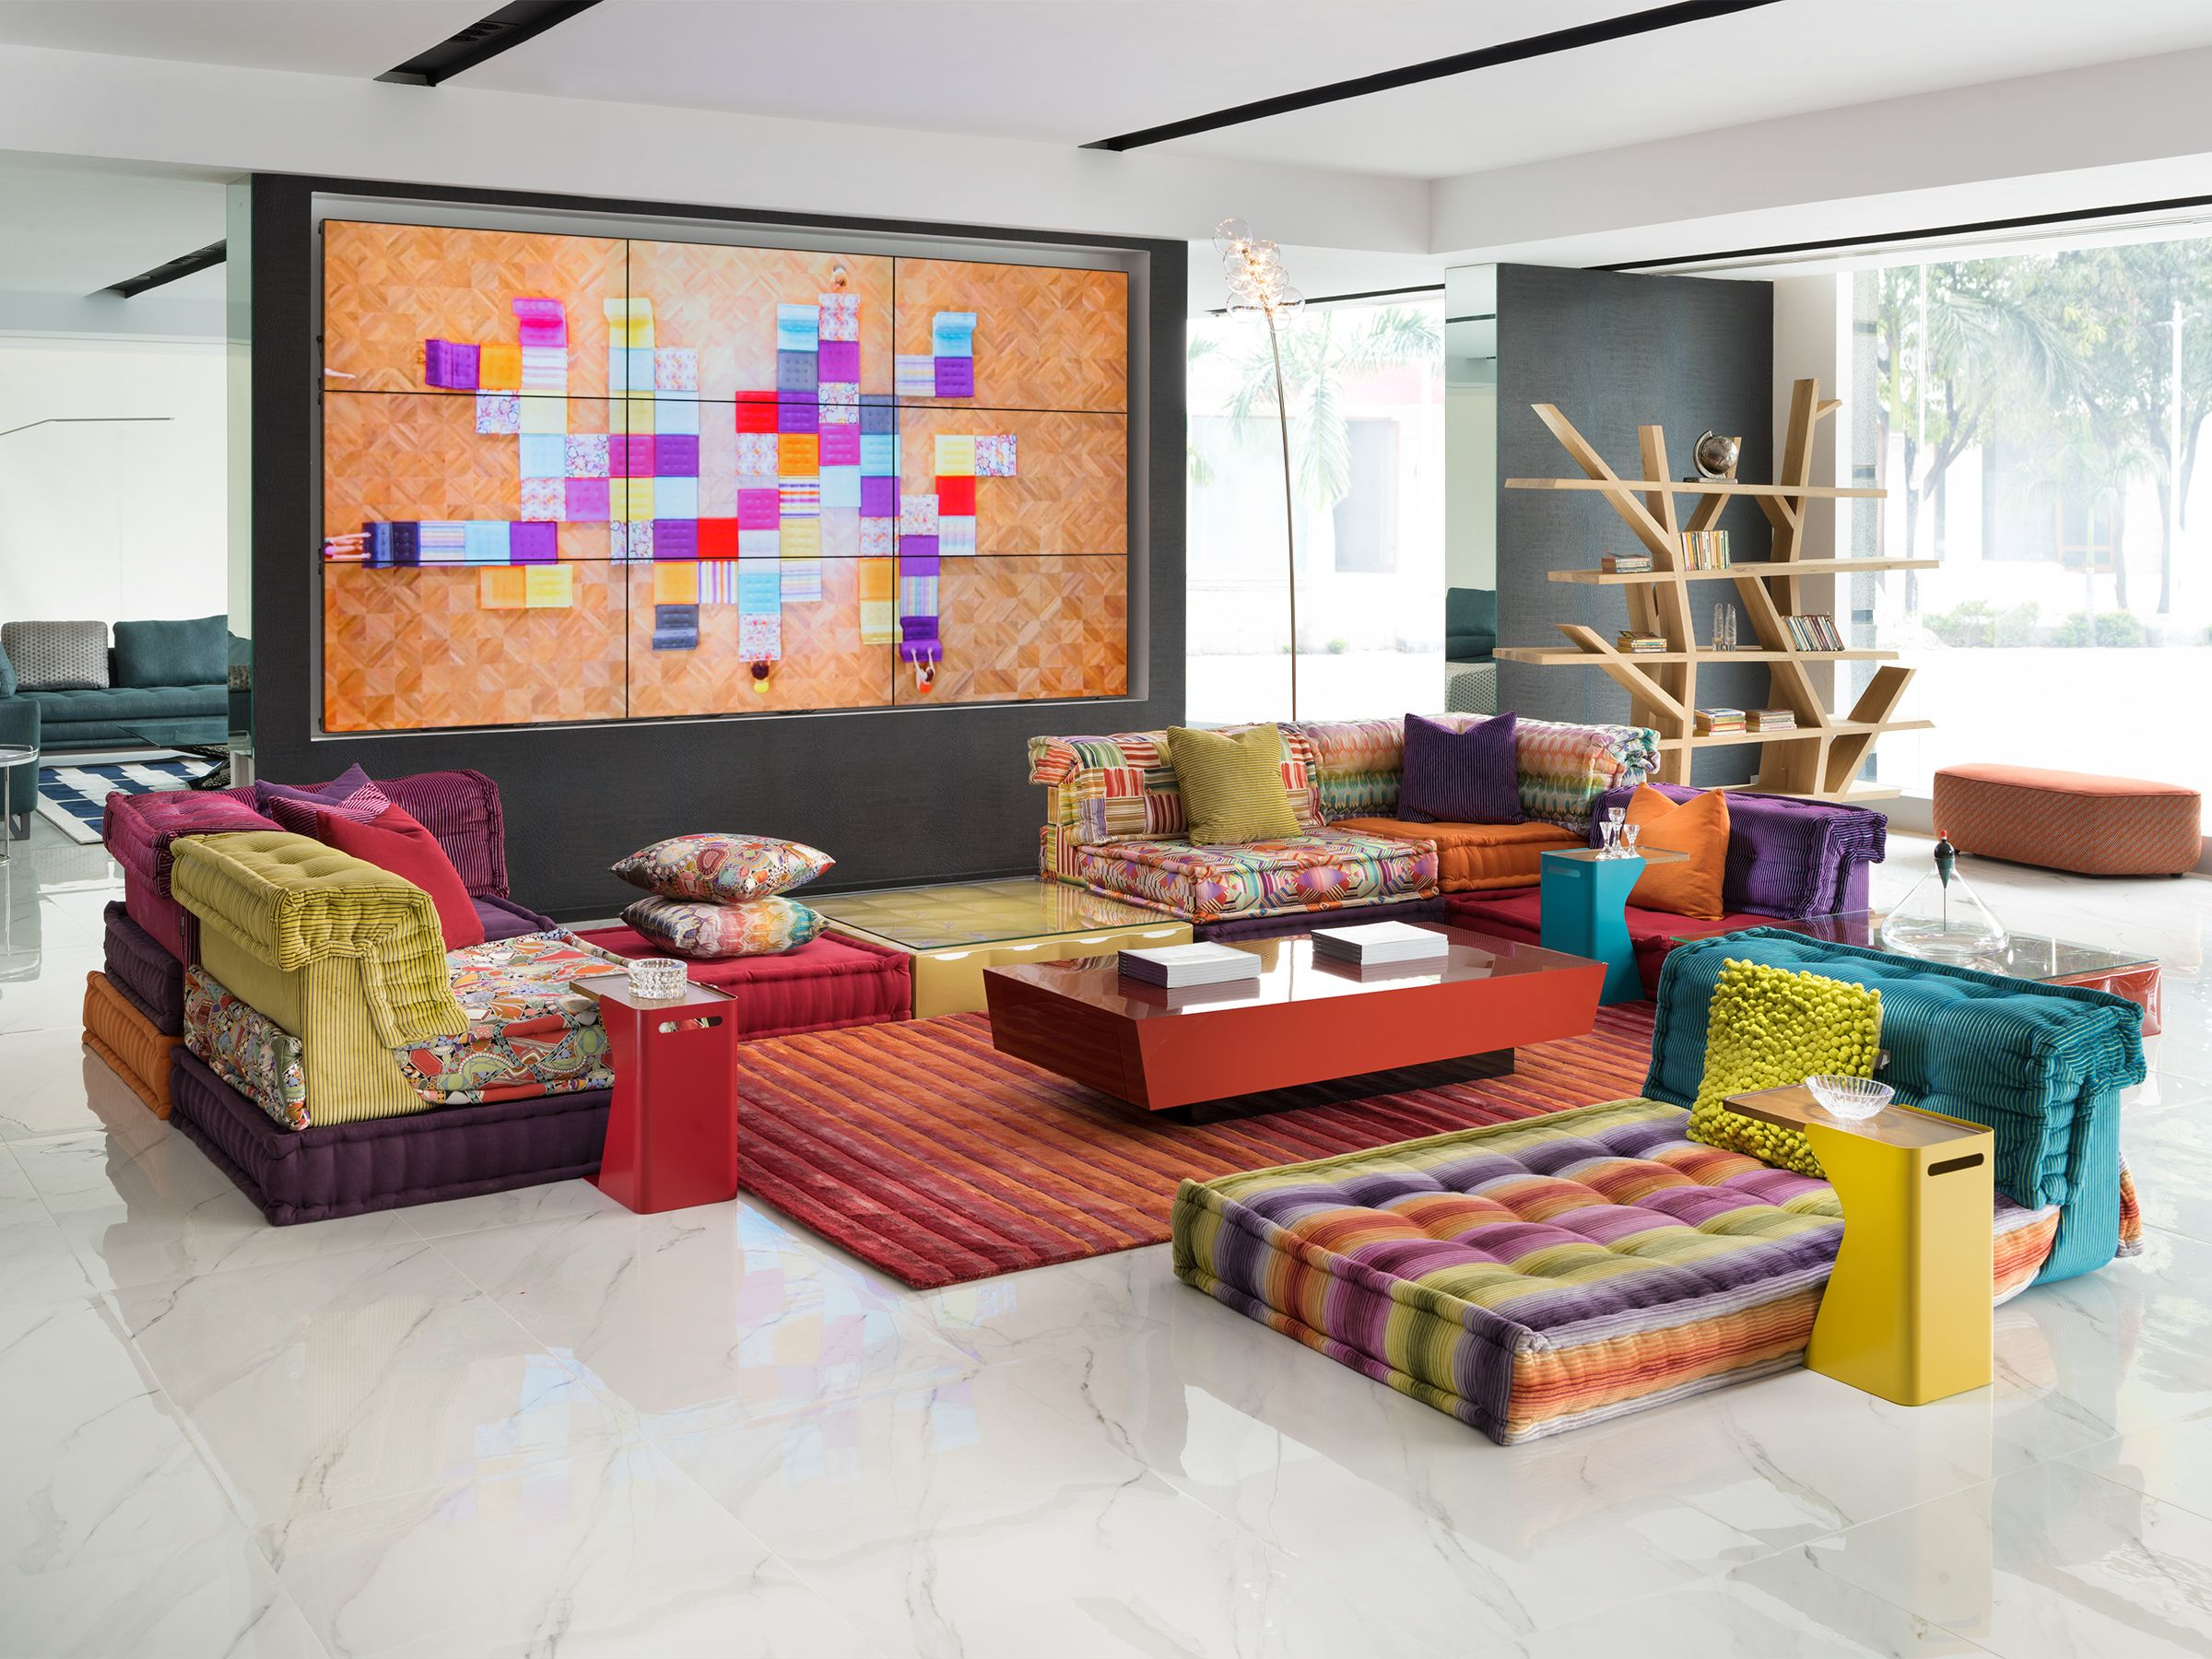 Aziatische Woonkamer Roche Bobois New Delhi India Mah Jong Sofa Showroom Display